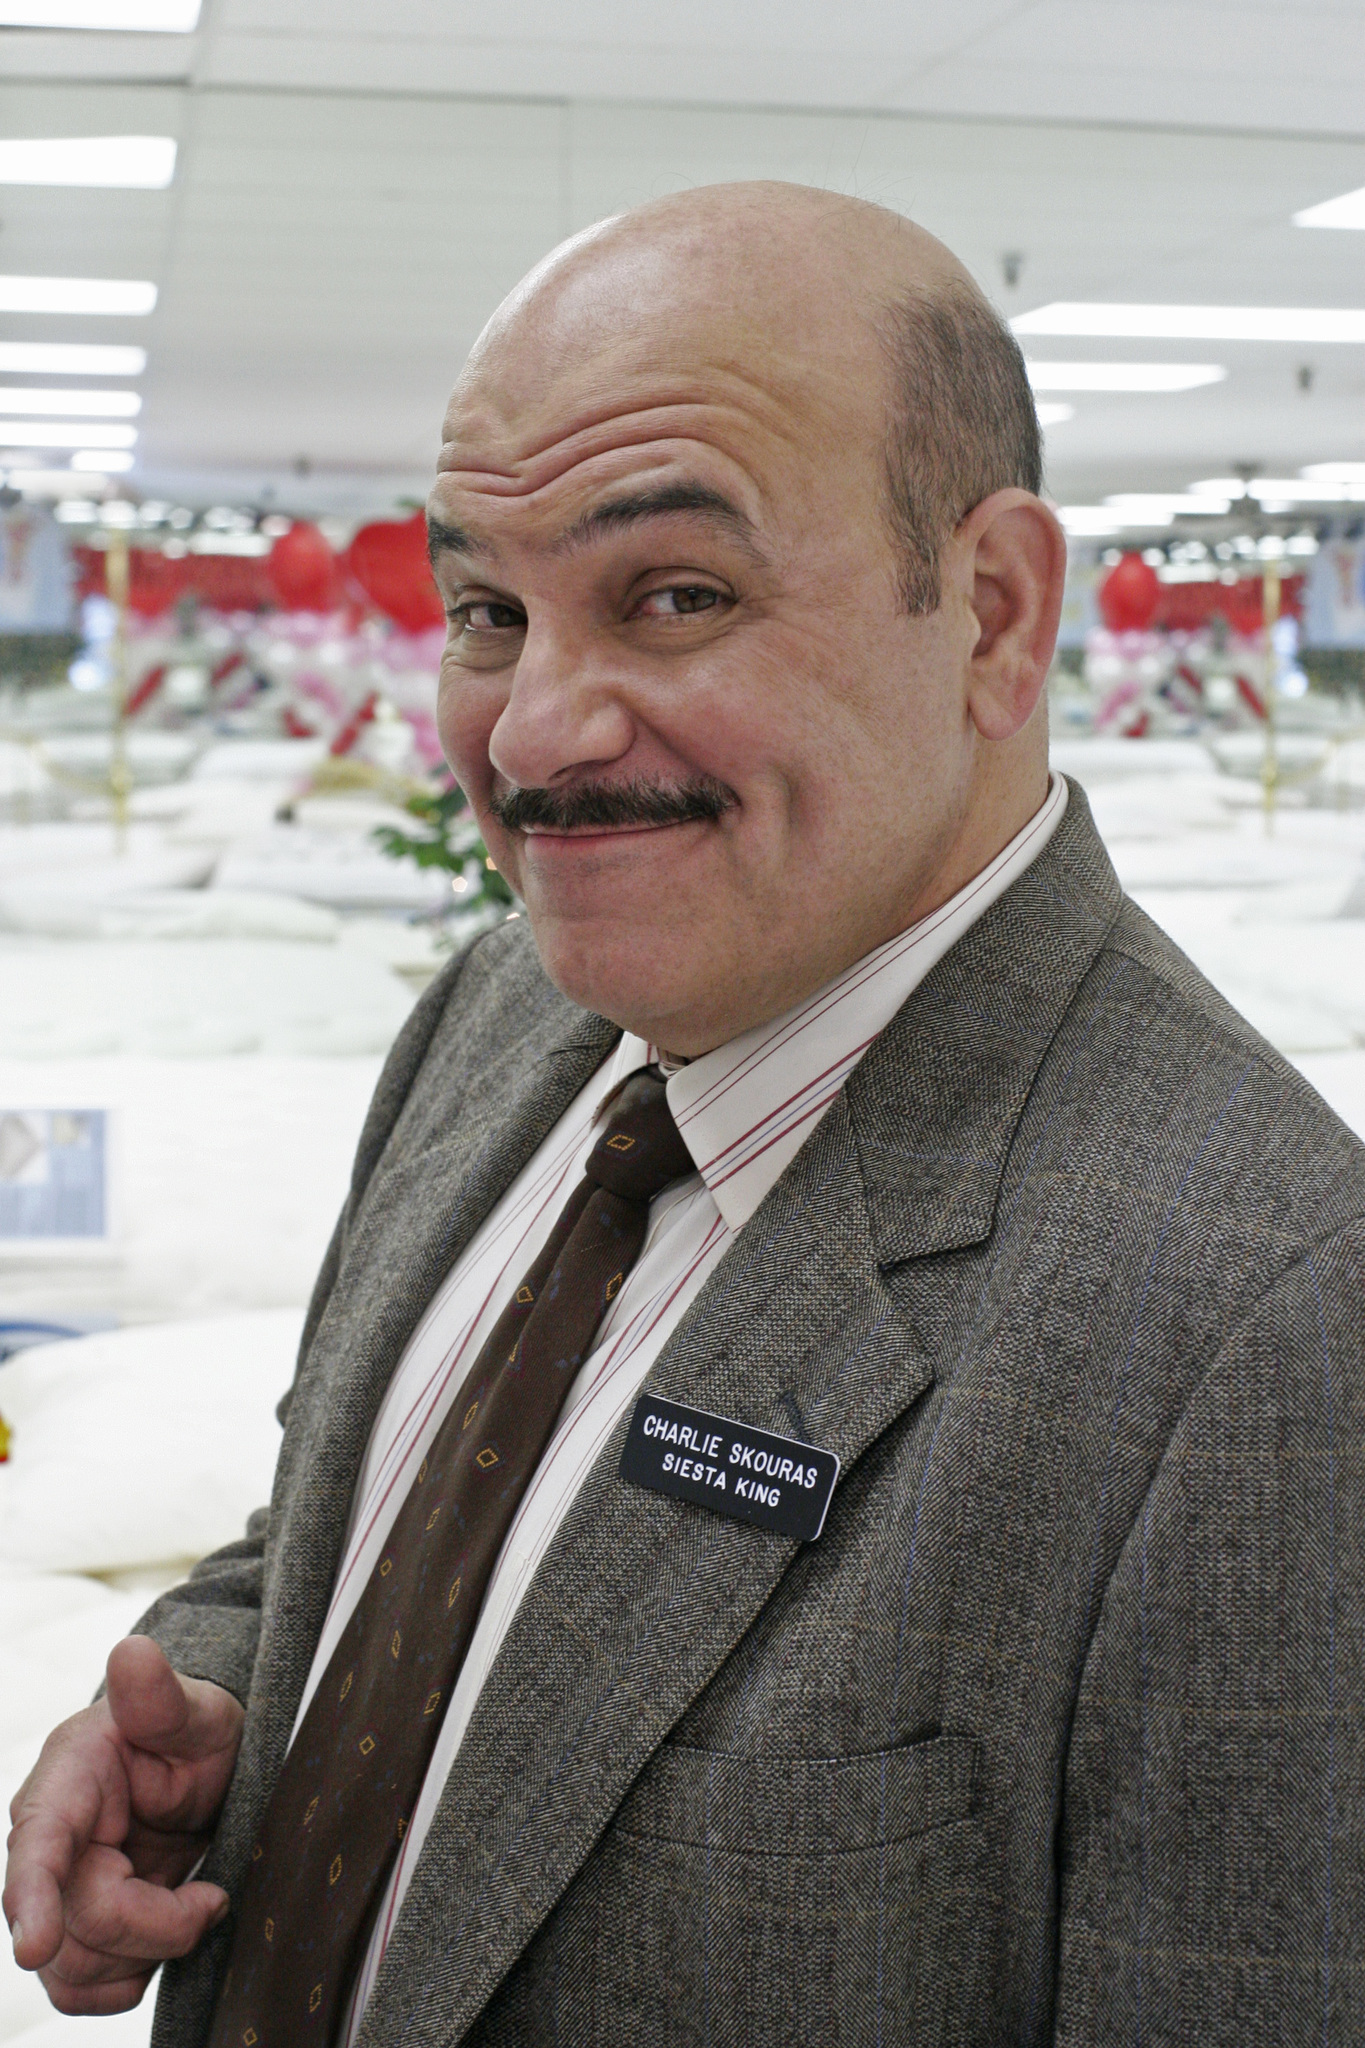 Jon Polito at an event for Desperate Housewives (2004)